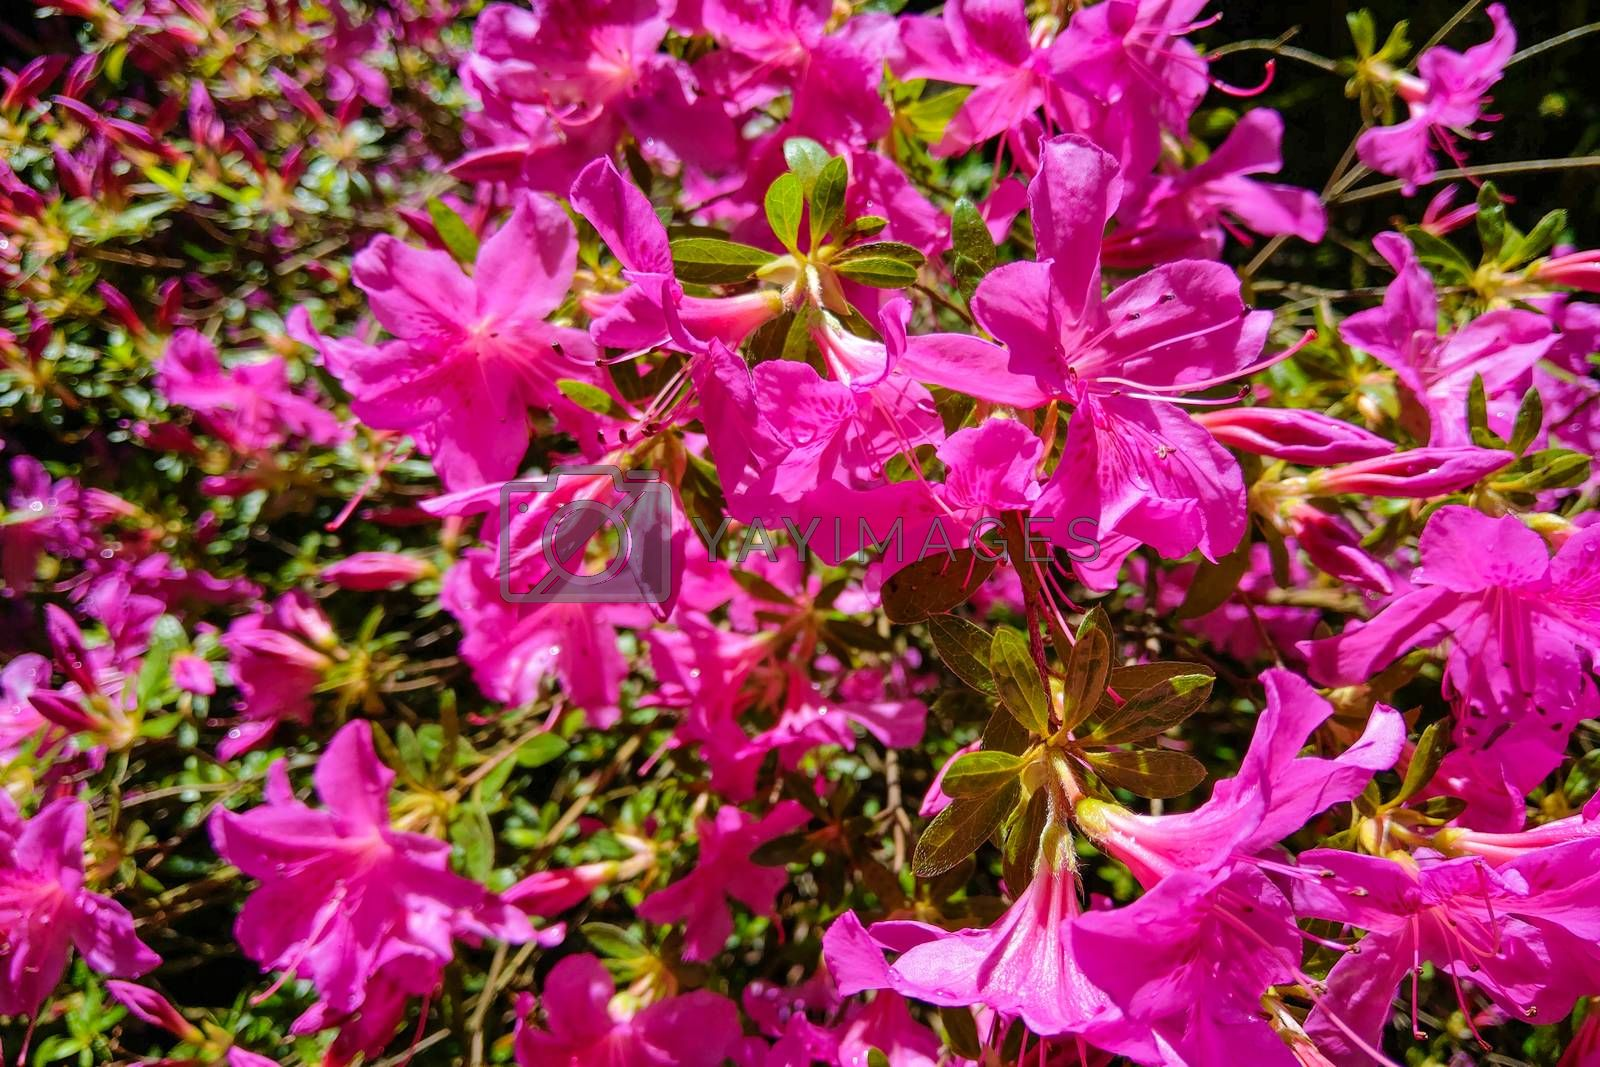 Mirabilis jalapa, the miracle of Peru or a four-hour flower, is the most common ornamental species of the Mirabilis plant and is available in various colors. by kip02kas